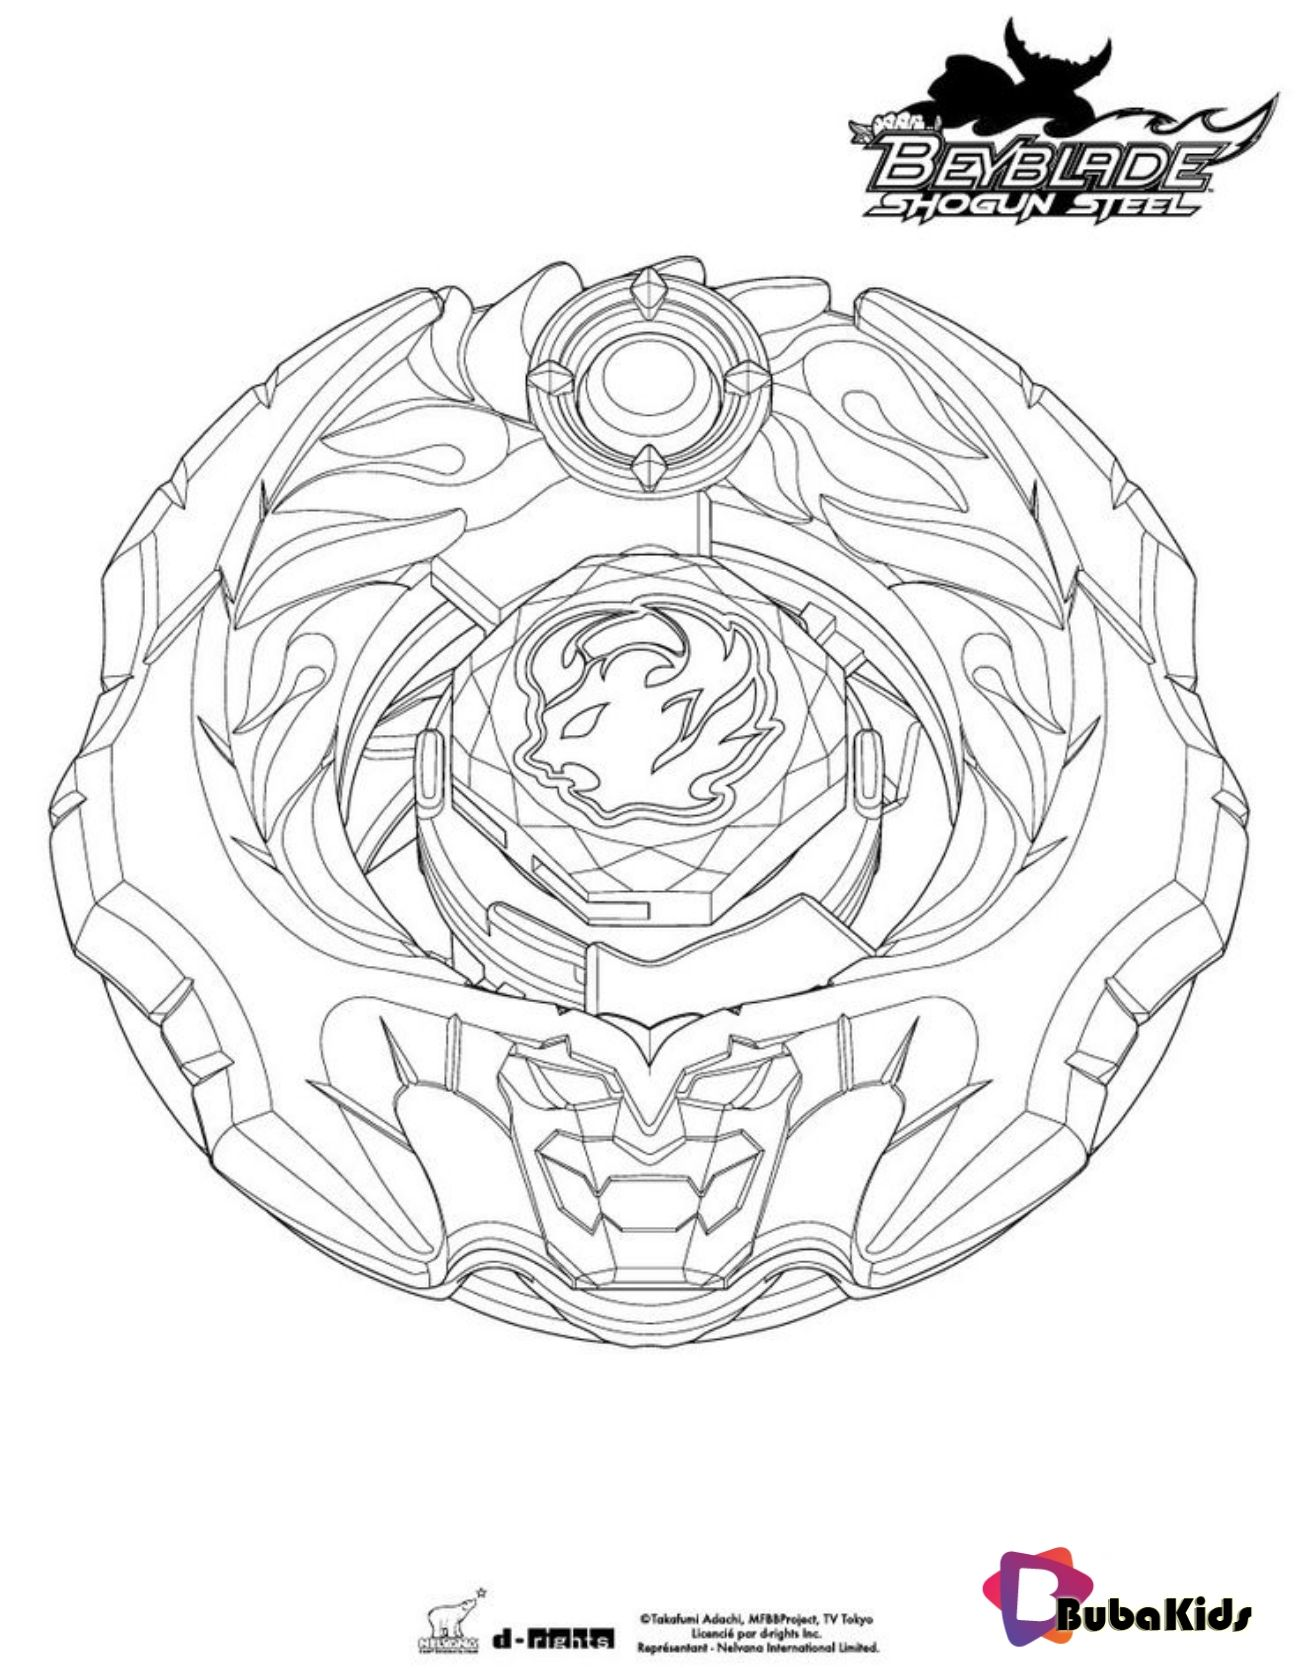 Beyblade Coloring Ifrit Page Printable Sheets Beyblade Coloring Ifrit Page Detailed Coloring Pages Pokemon Coloring Pages Cartoon Coloring Pages